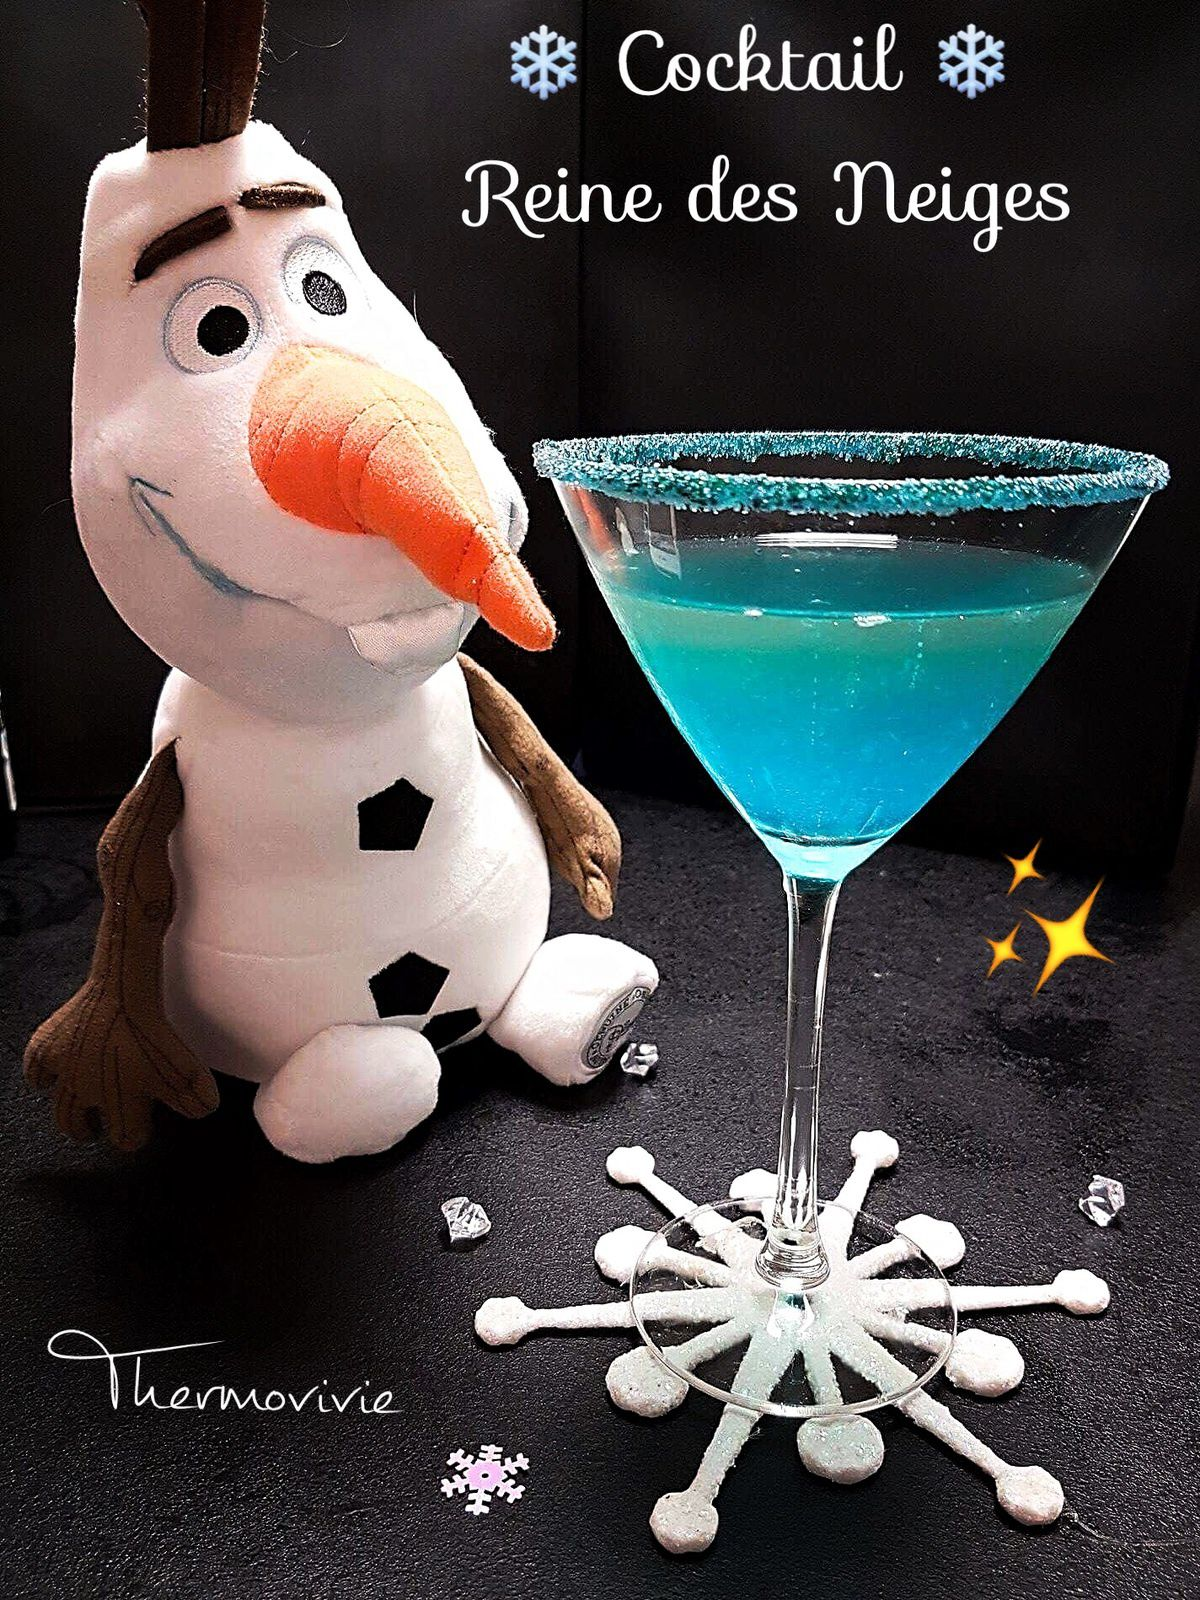 Cocktail de la reine des neiges